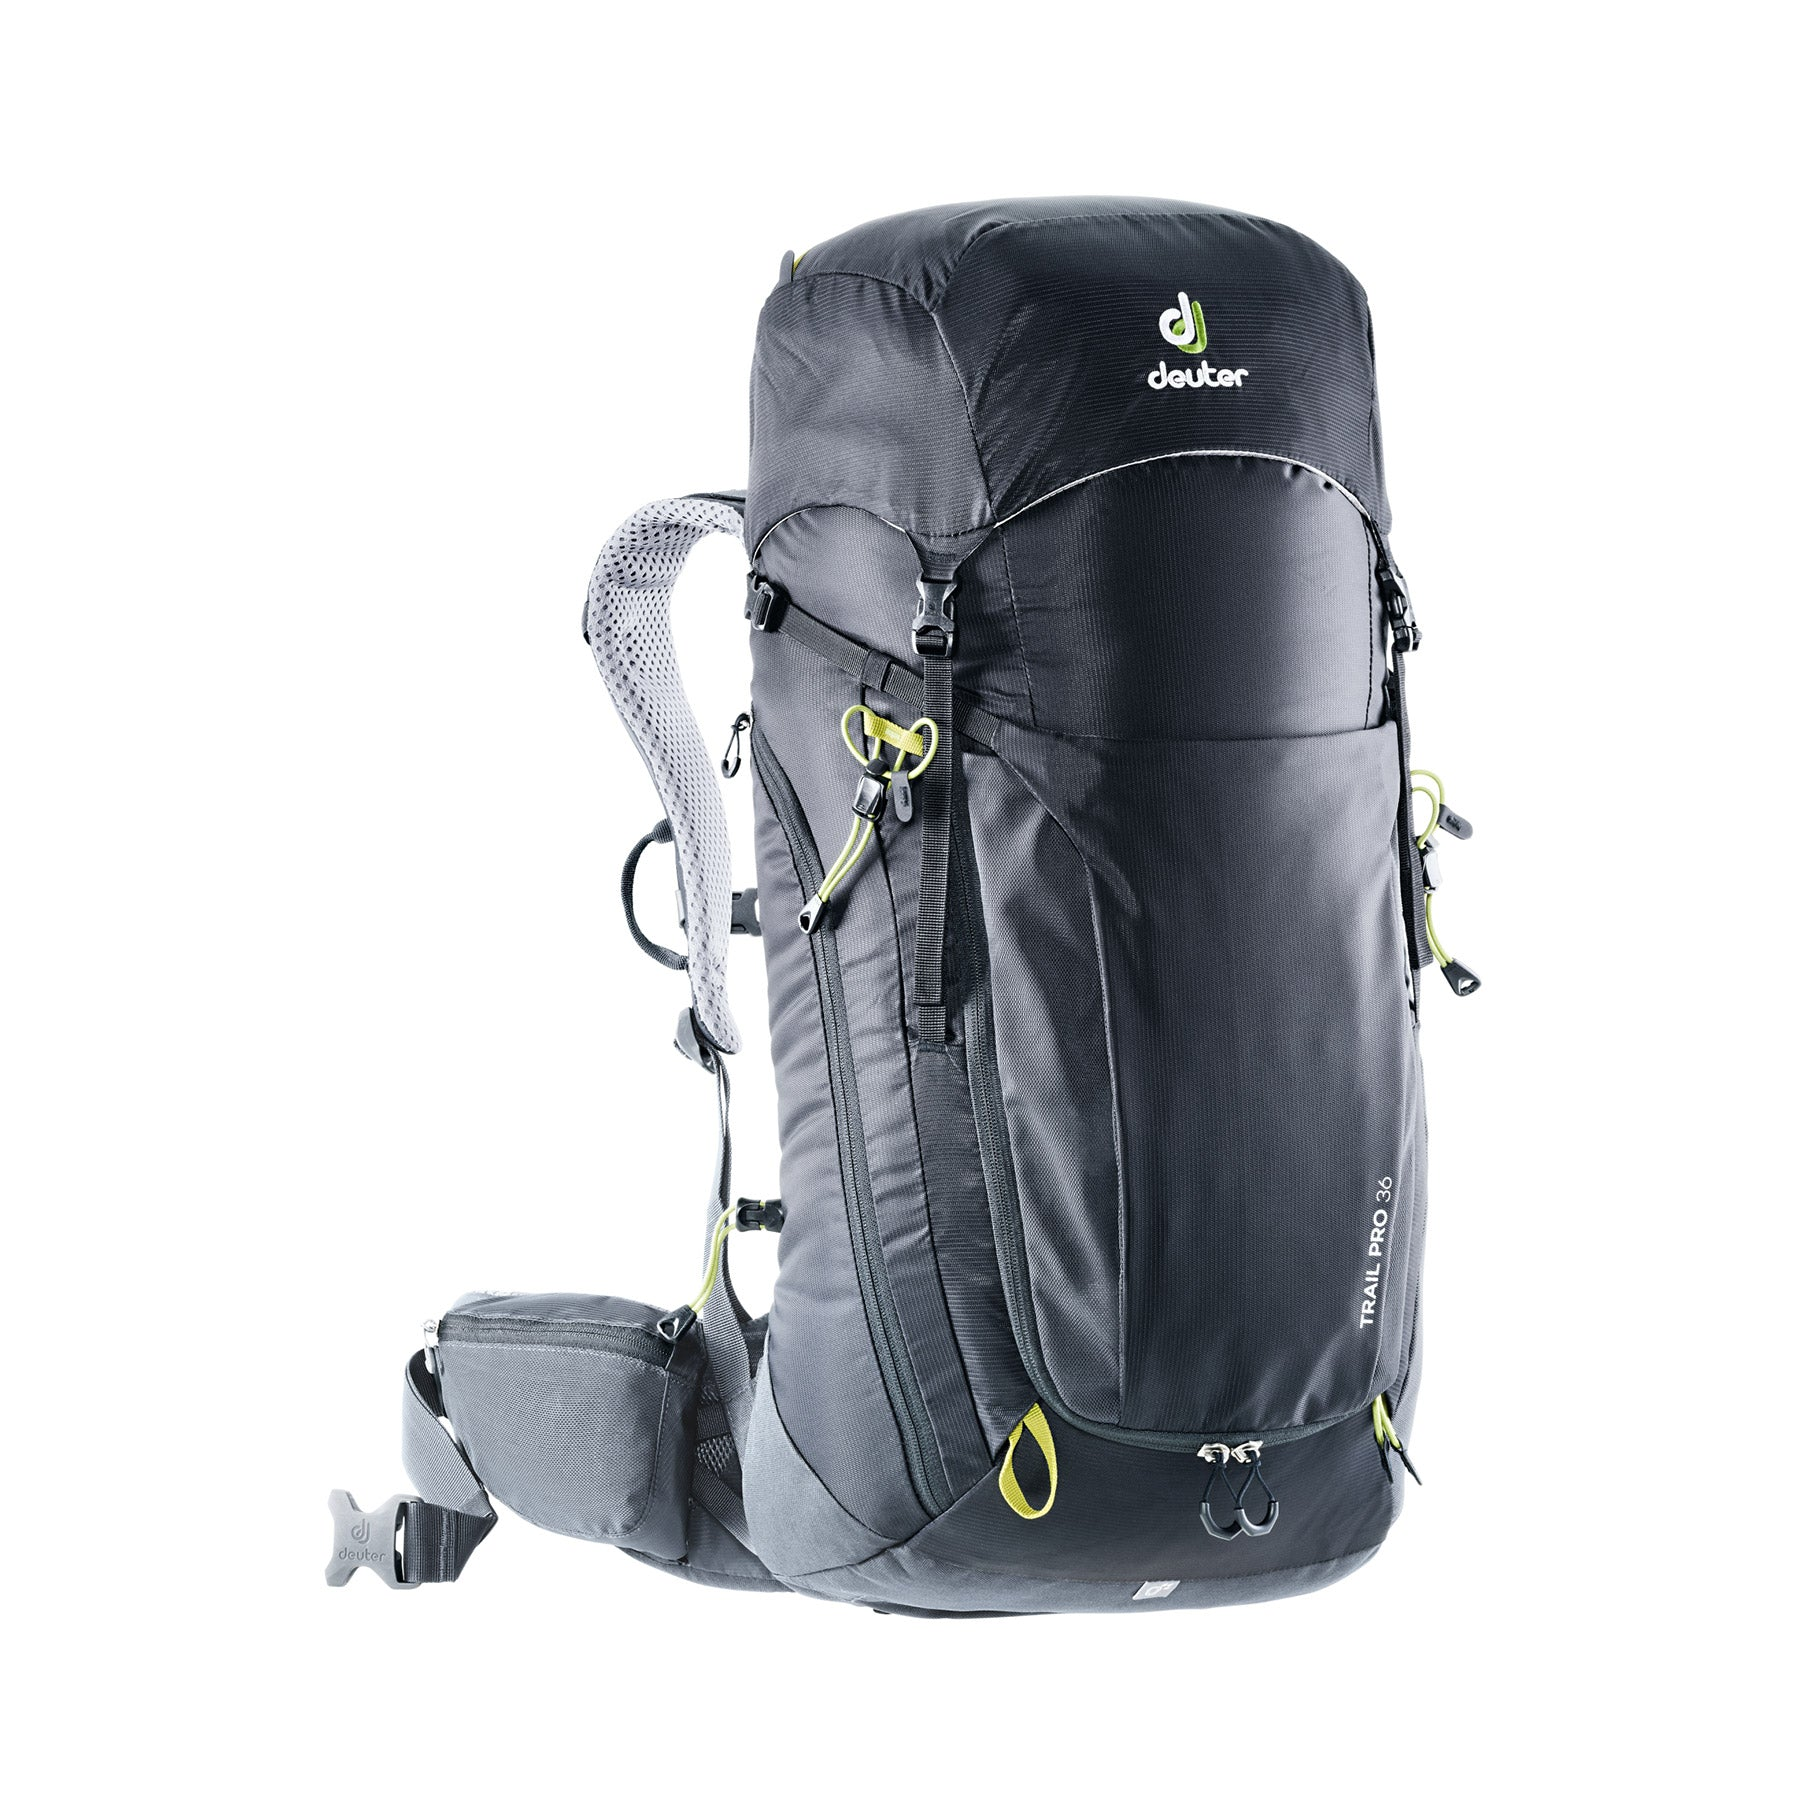 deuter trail pro 36 liter backpack front view in color black with lime green details